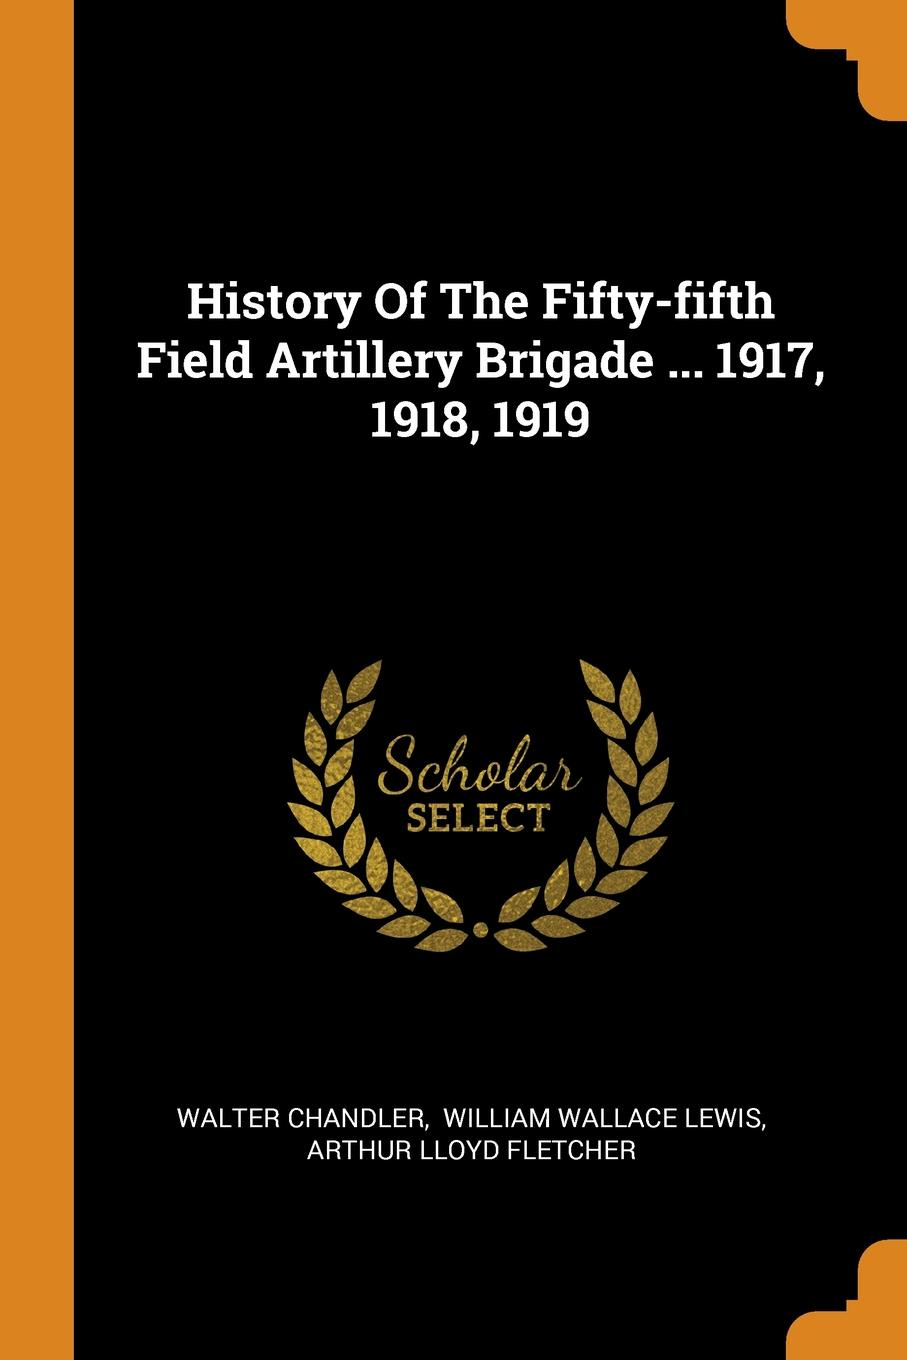 Walter Chandler History Of The Fifty-fifth Field Artillery Brigade ... 1917, 1918, 1919